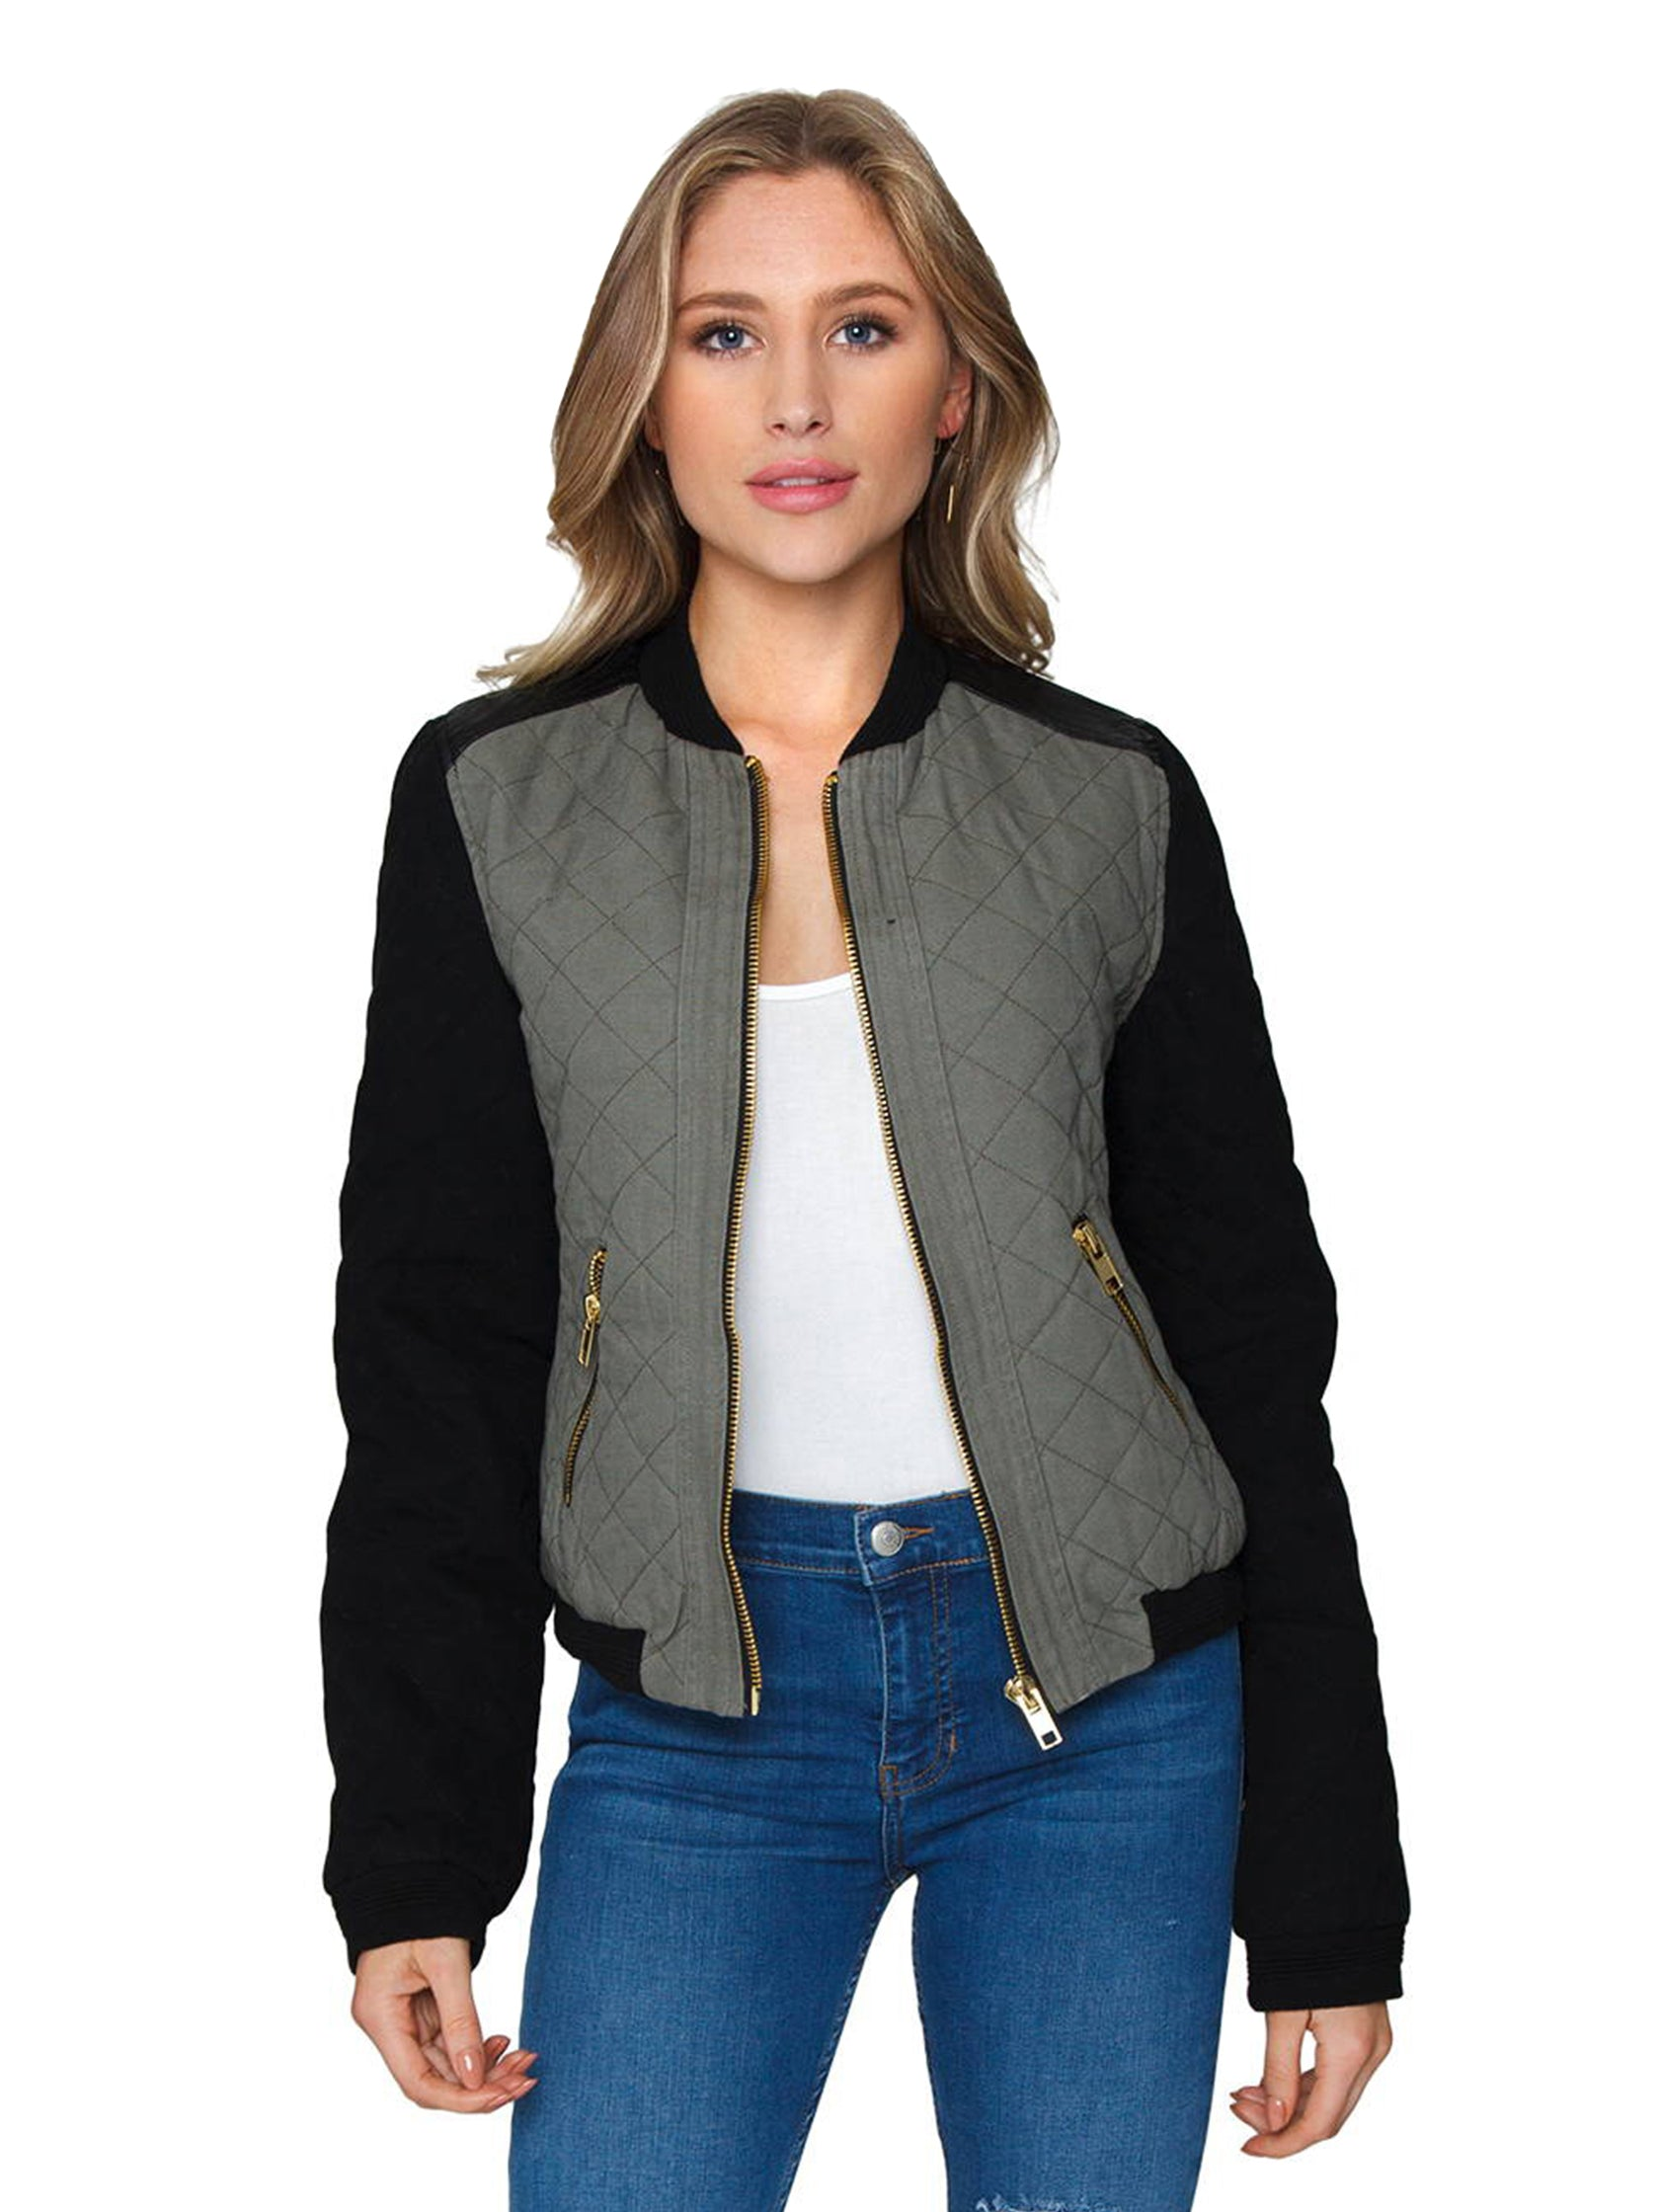 Woman wearing a jacket rental from FashionPass called Quilted Bomber Jacket